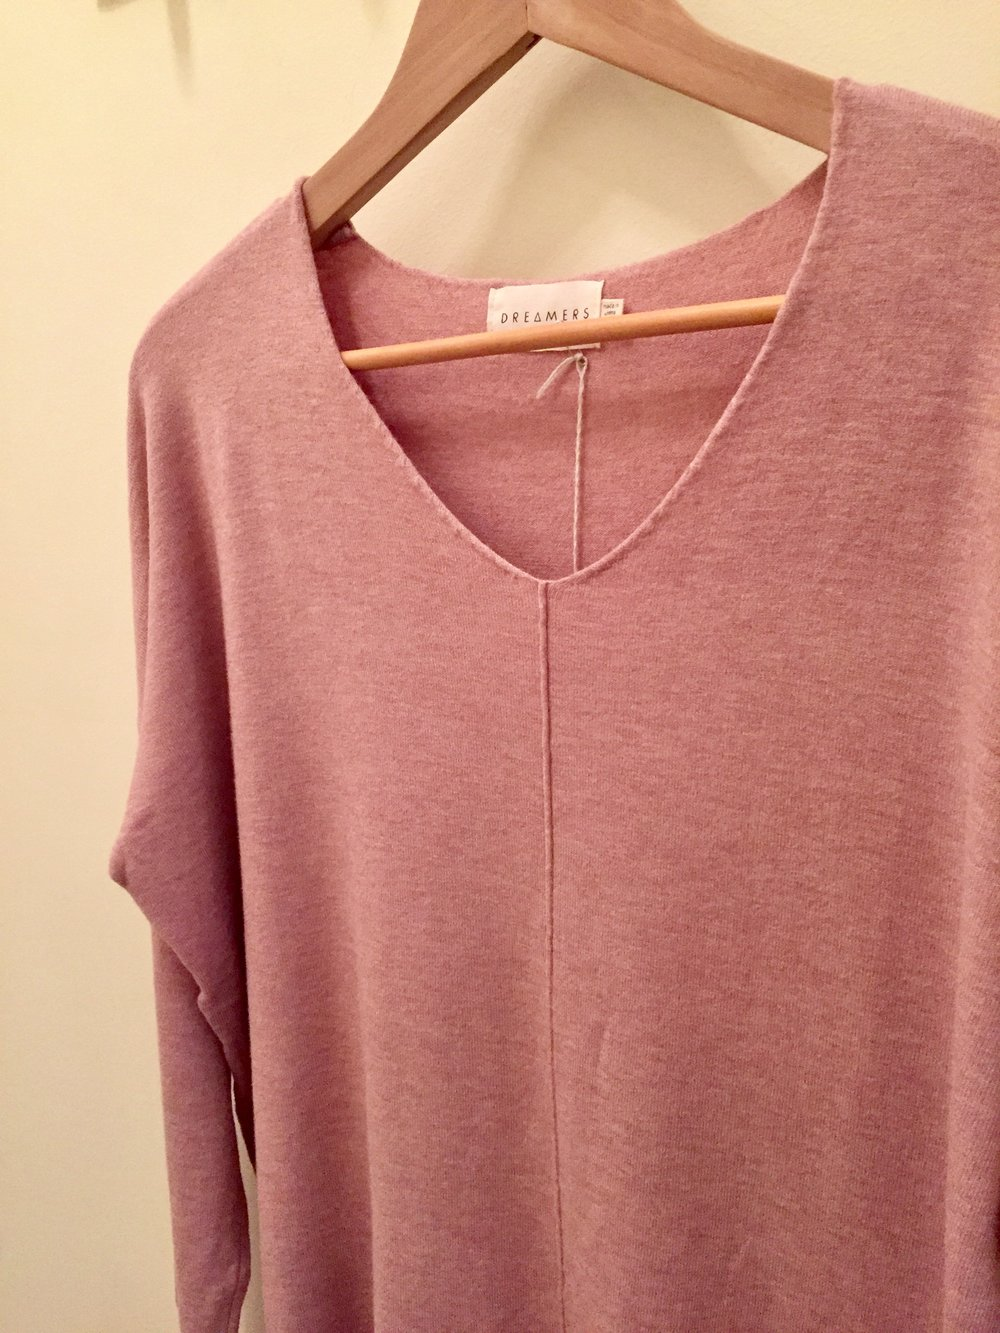 Dreamers Sweater (Back in Blush, $42)